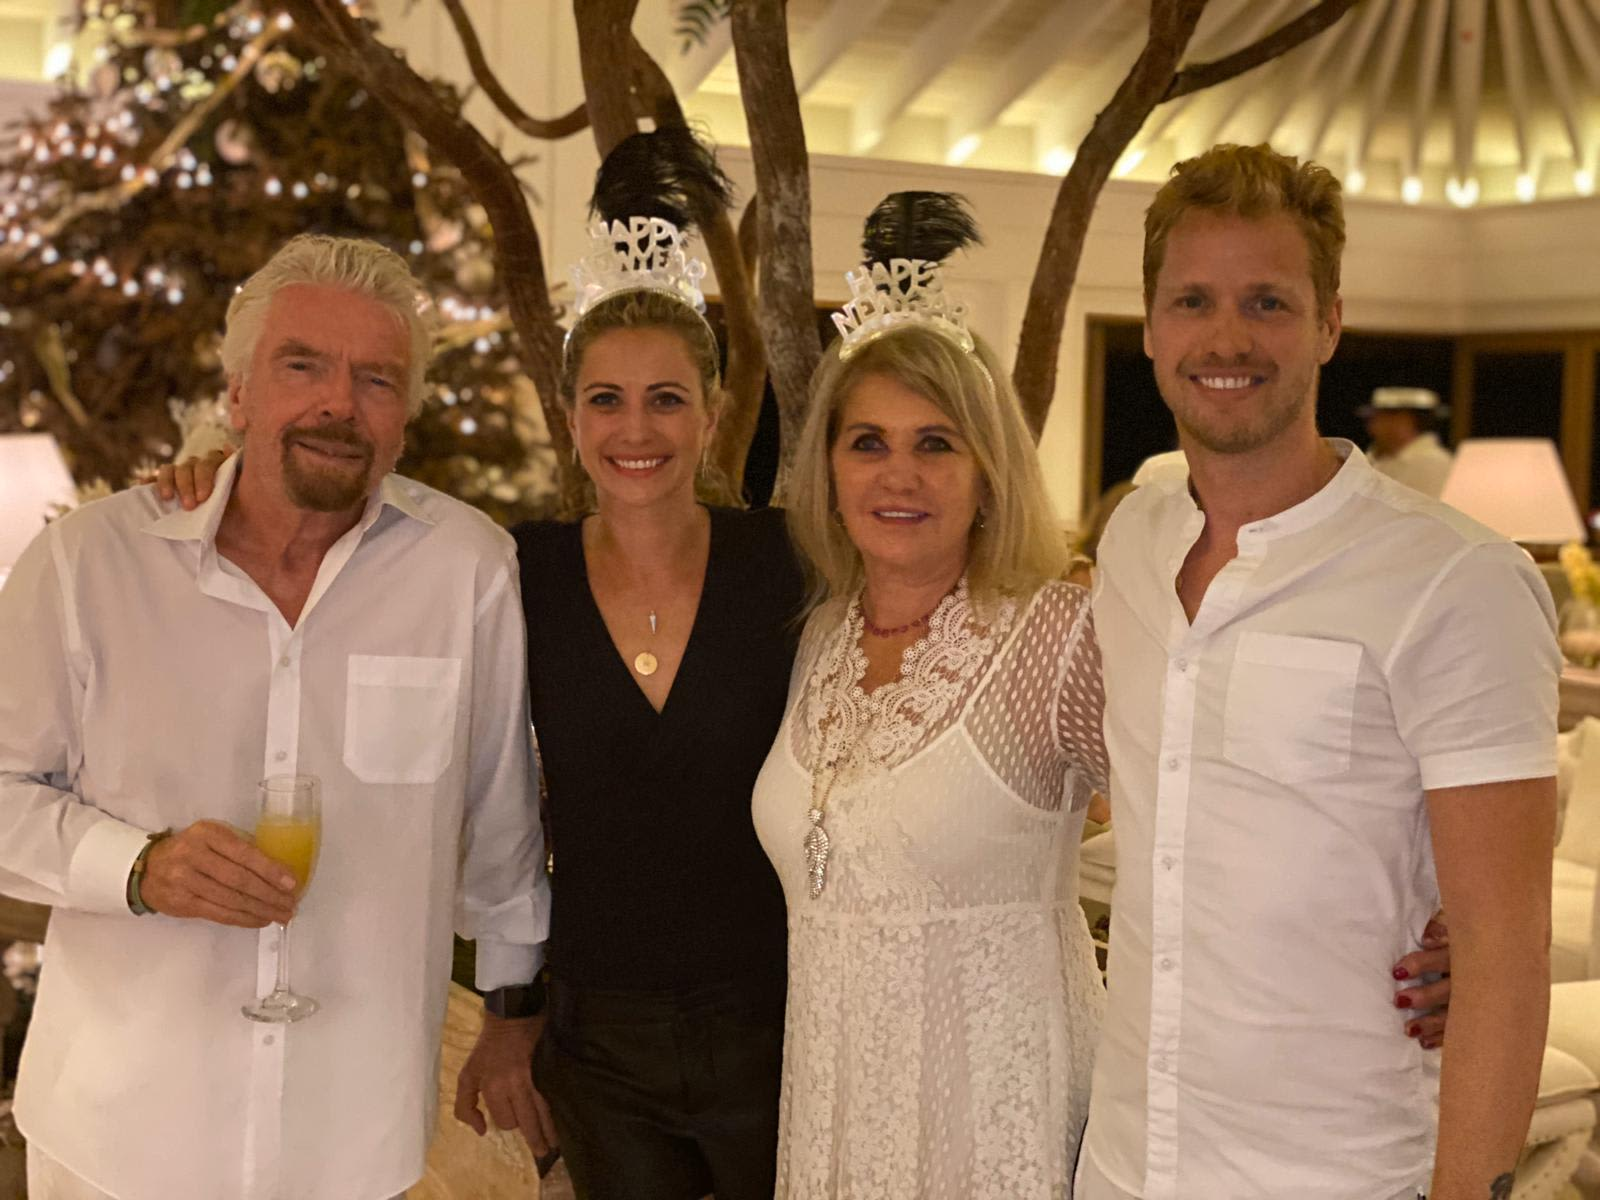 Richard Branson with the family on New Year's Eve